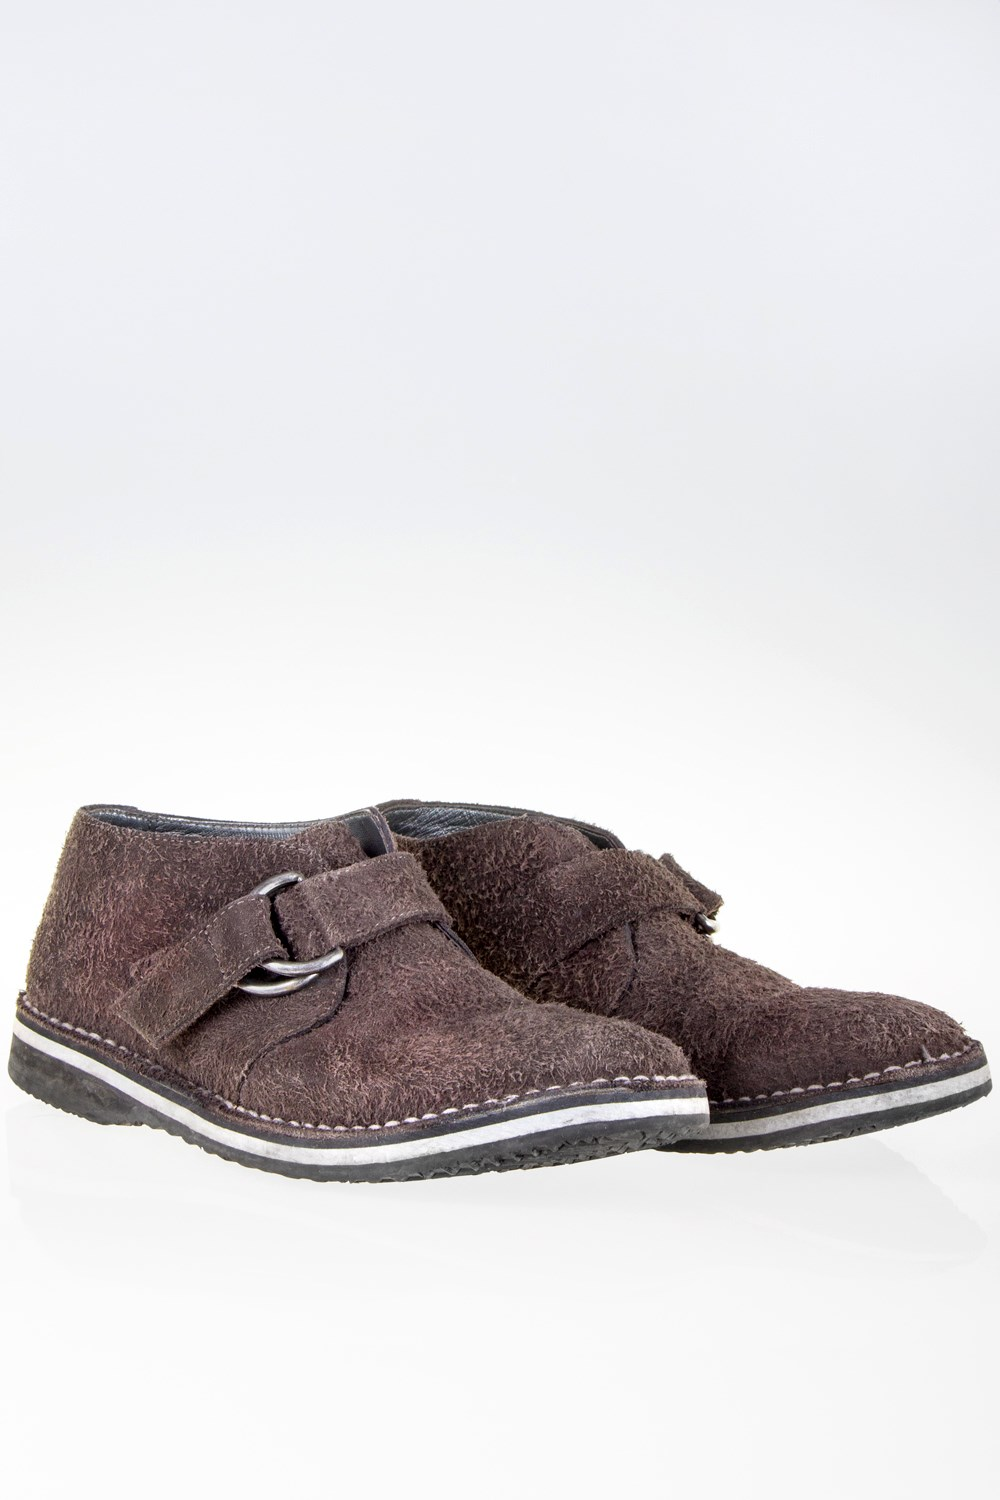 19c5d415a8cd Geox by Patrick Cox Brown Suede Monk Boots   Size    - Fit  40.5 ...